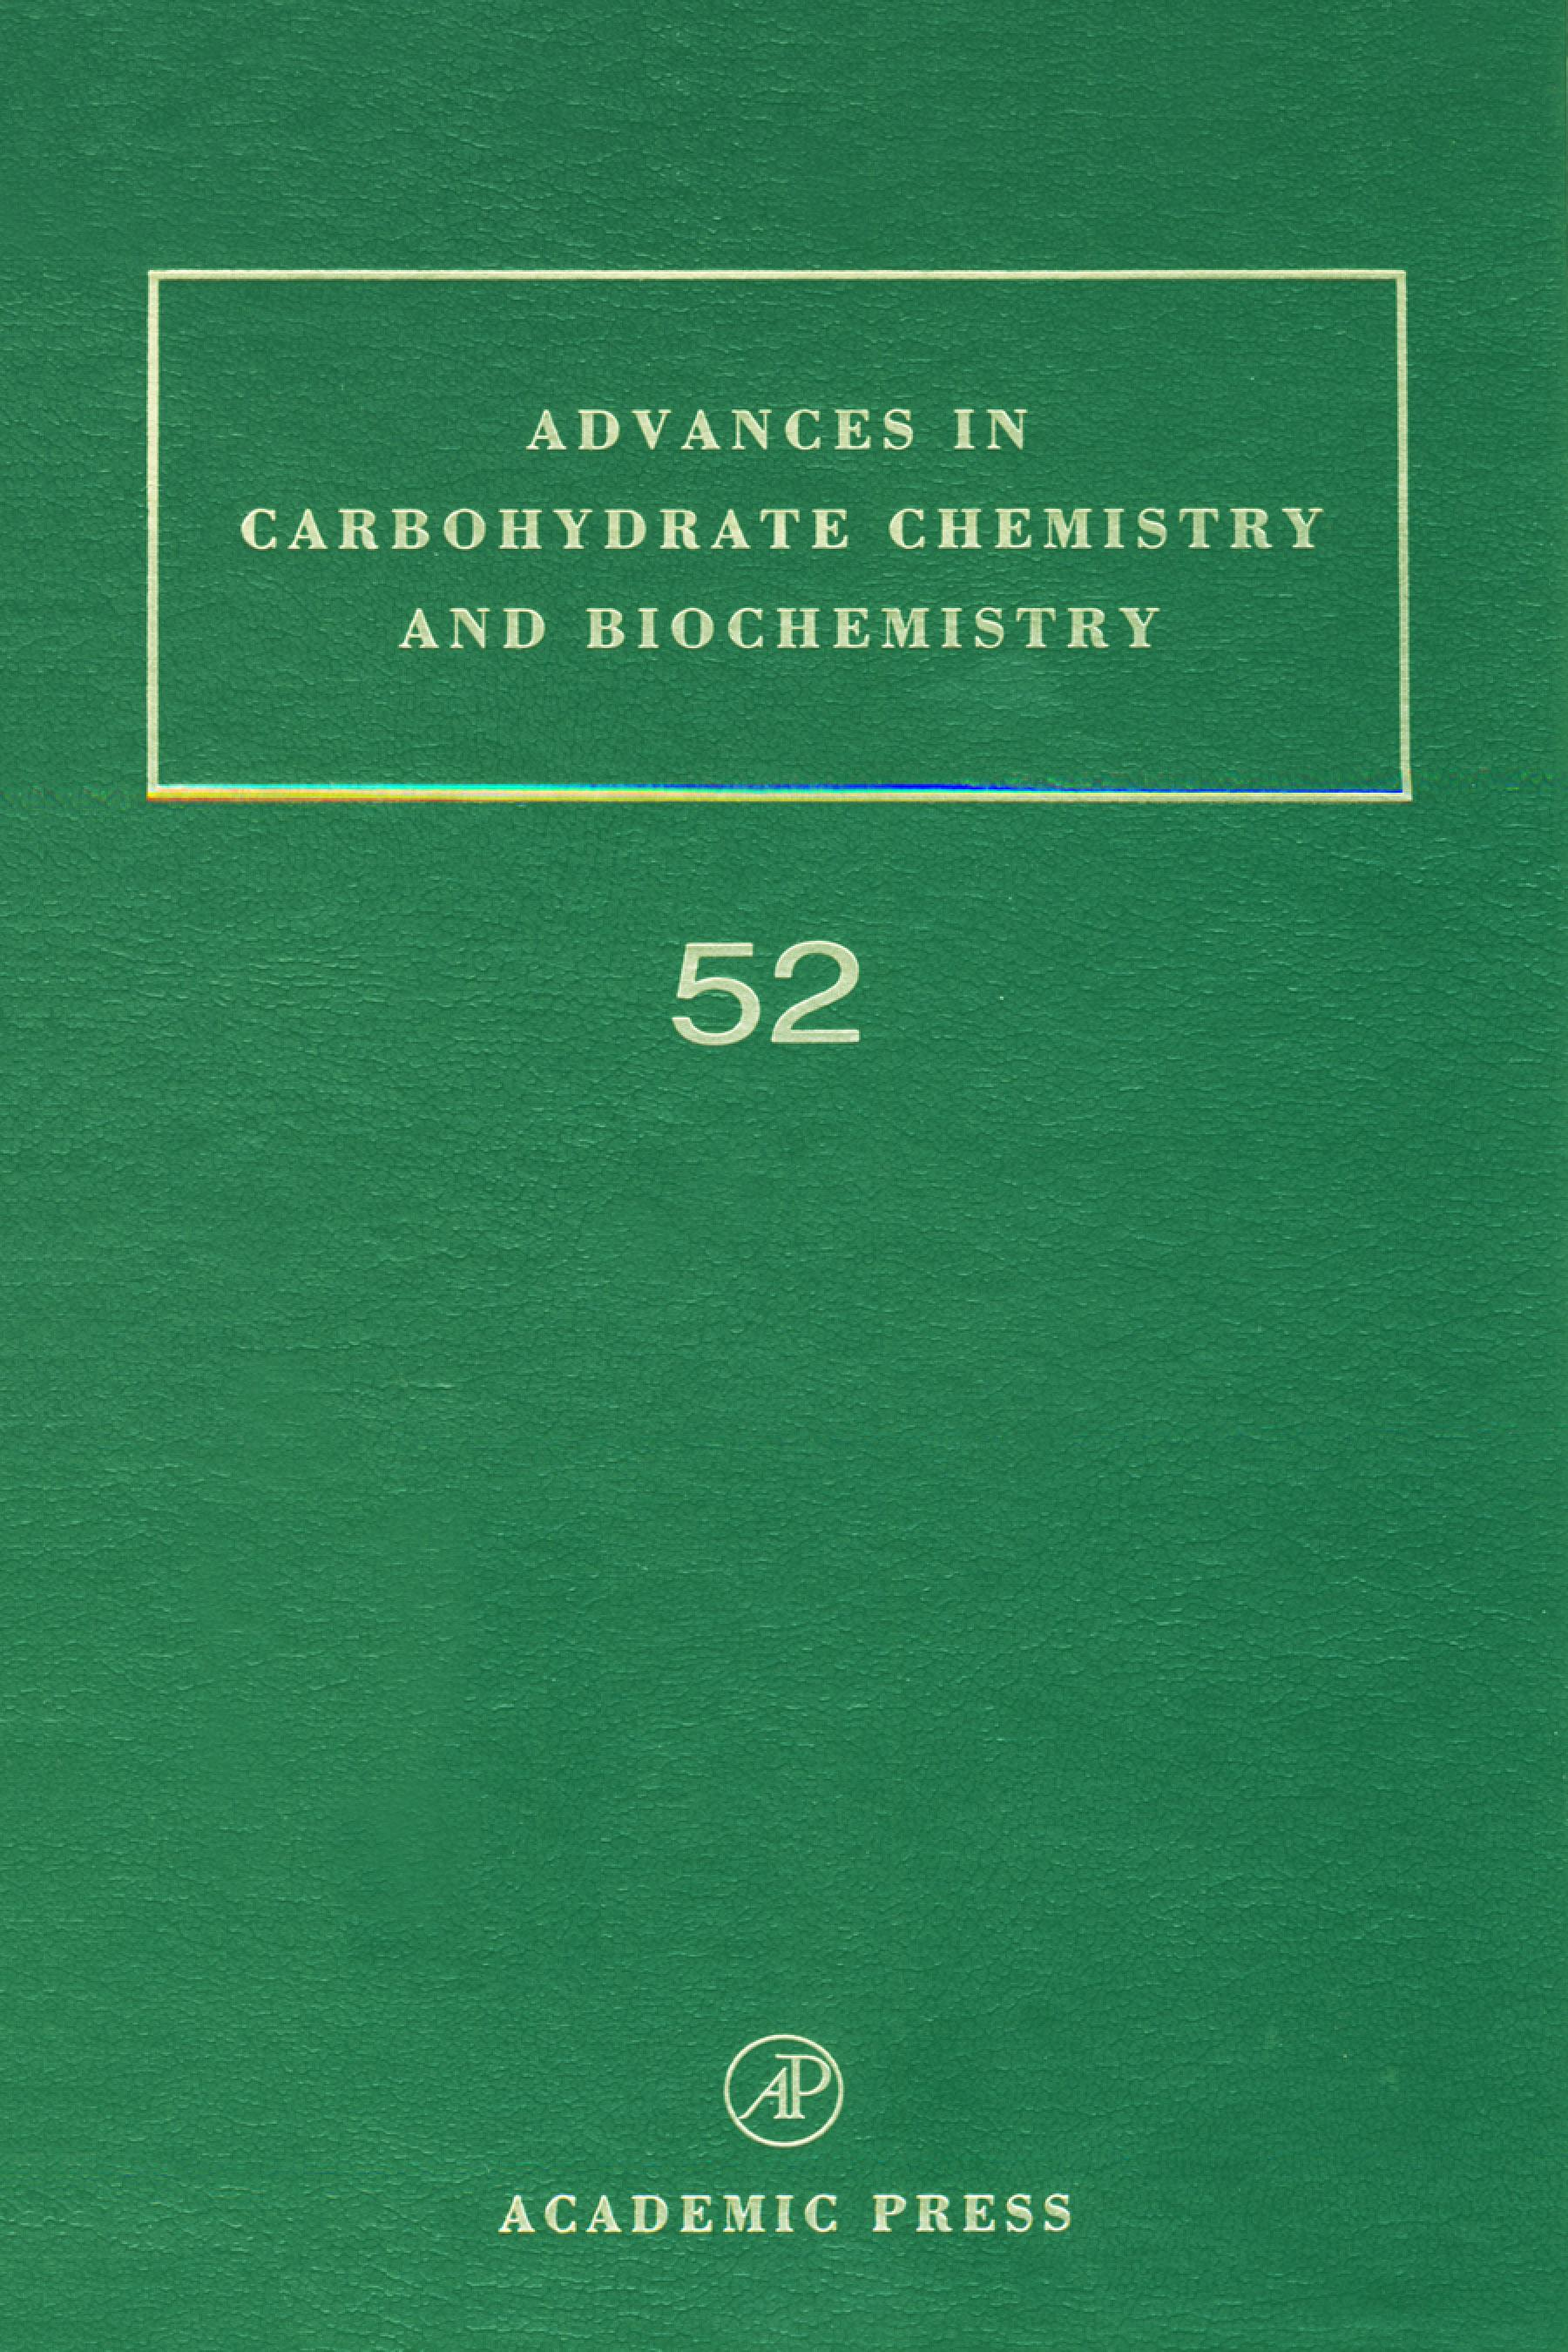 Advances in Carbohydrate Chemistry and Biochemistry EB9780080563114